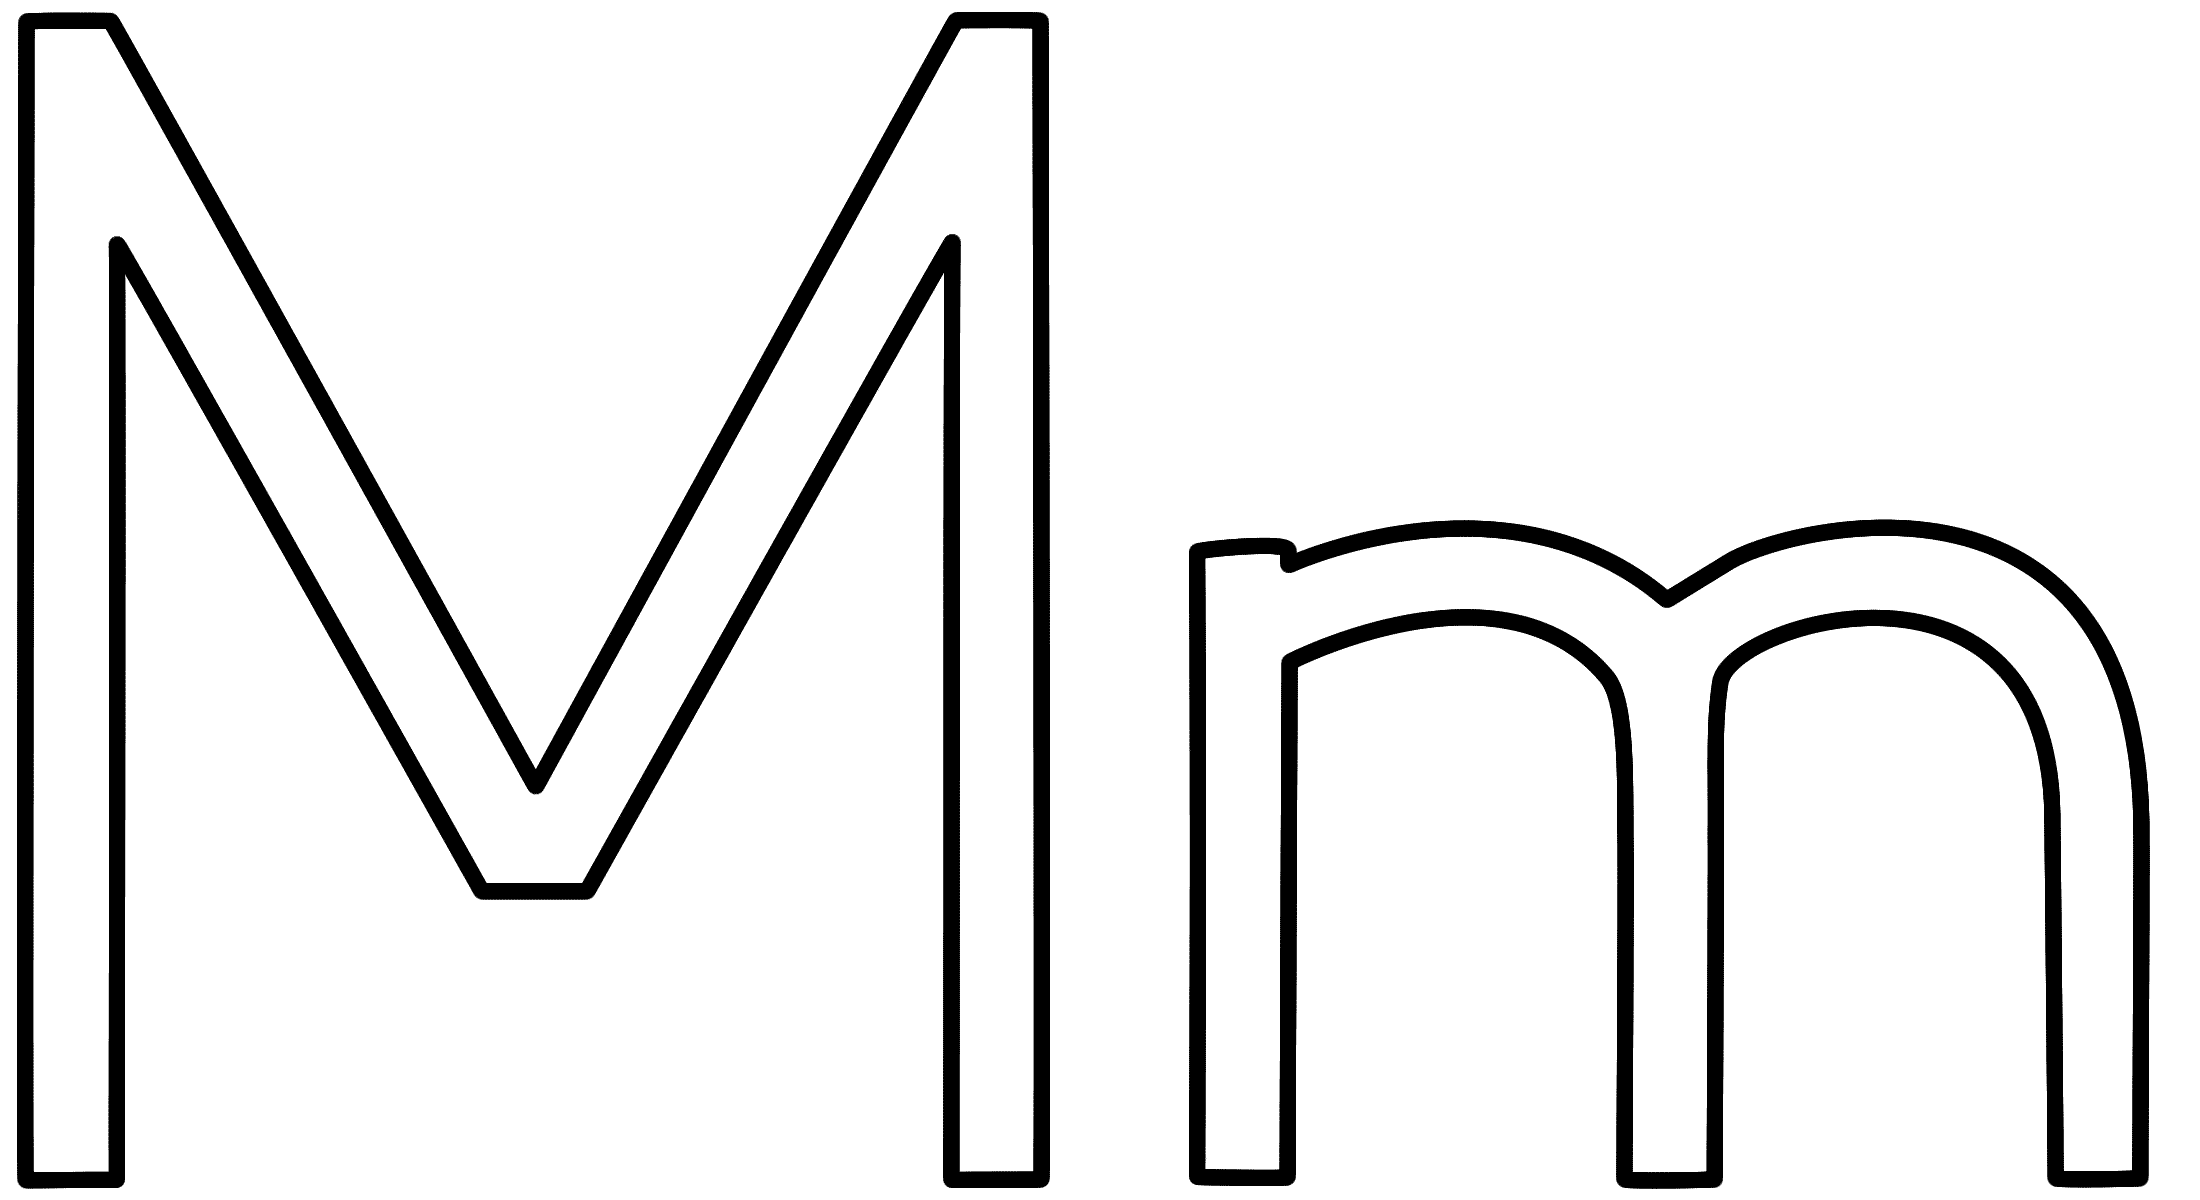 coloring printable m letter images letter m coloring page alphabet images m printable coloring letter